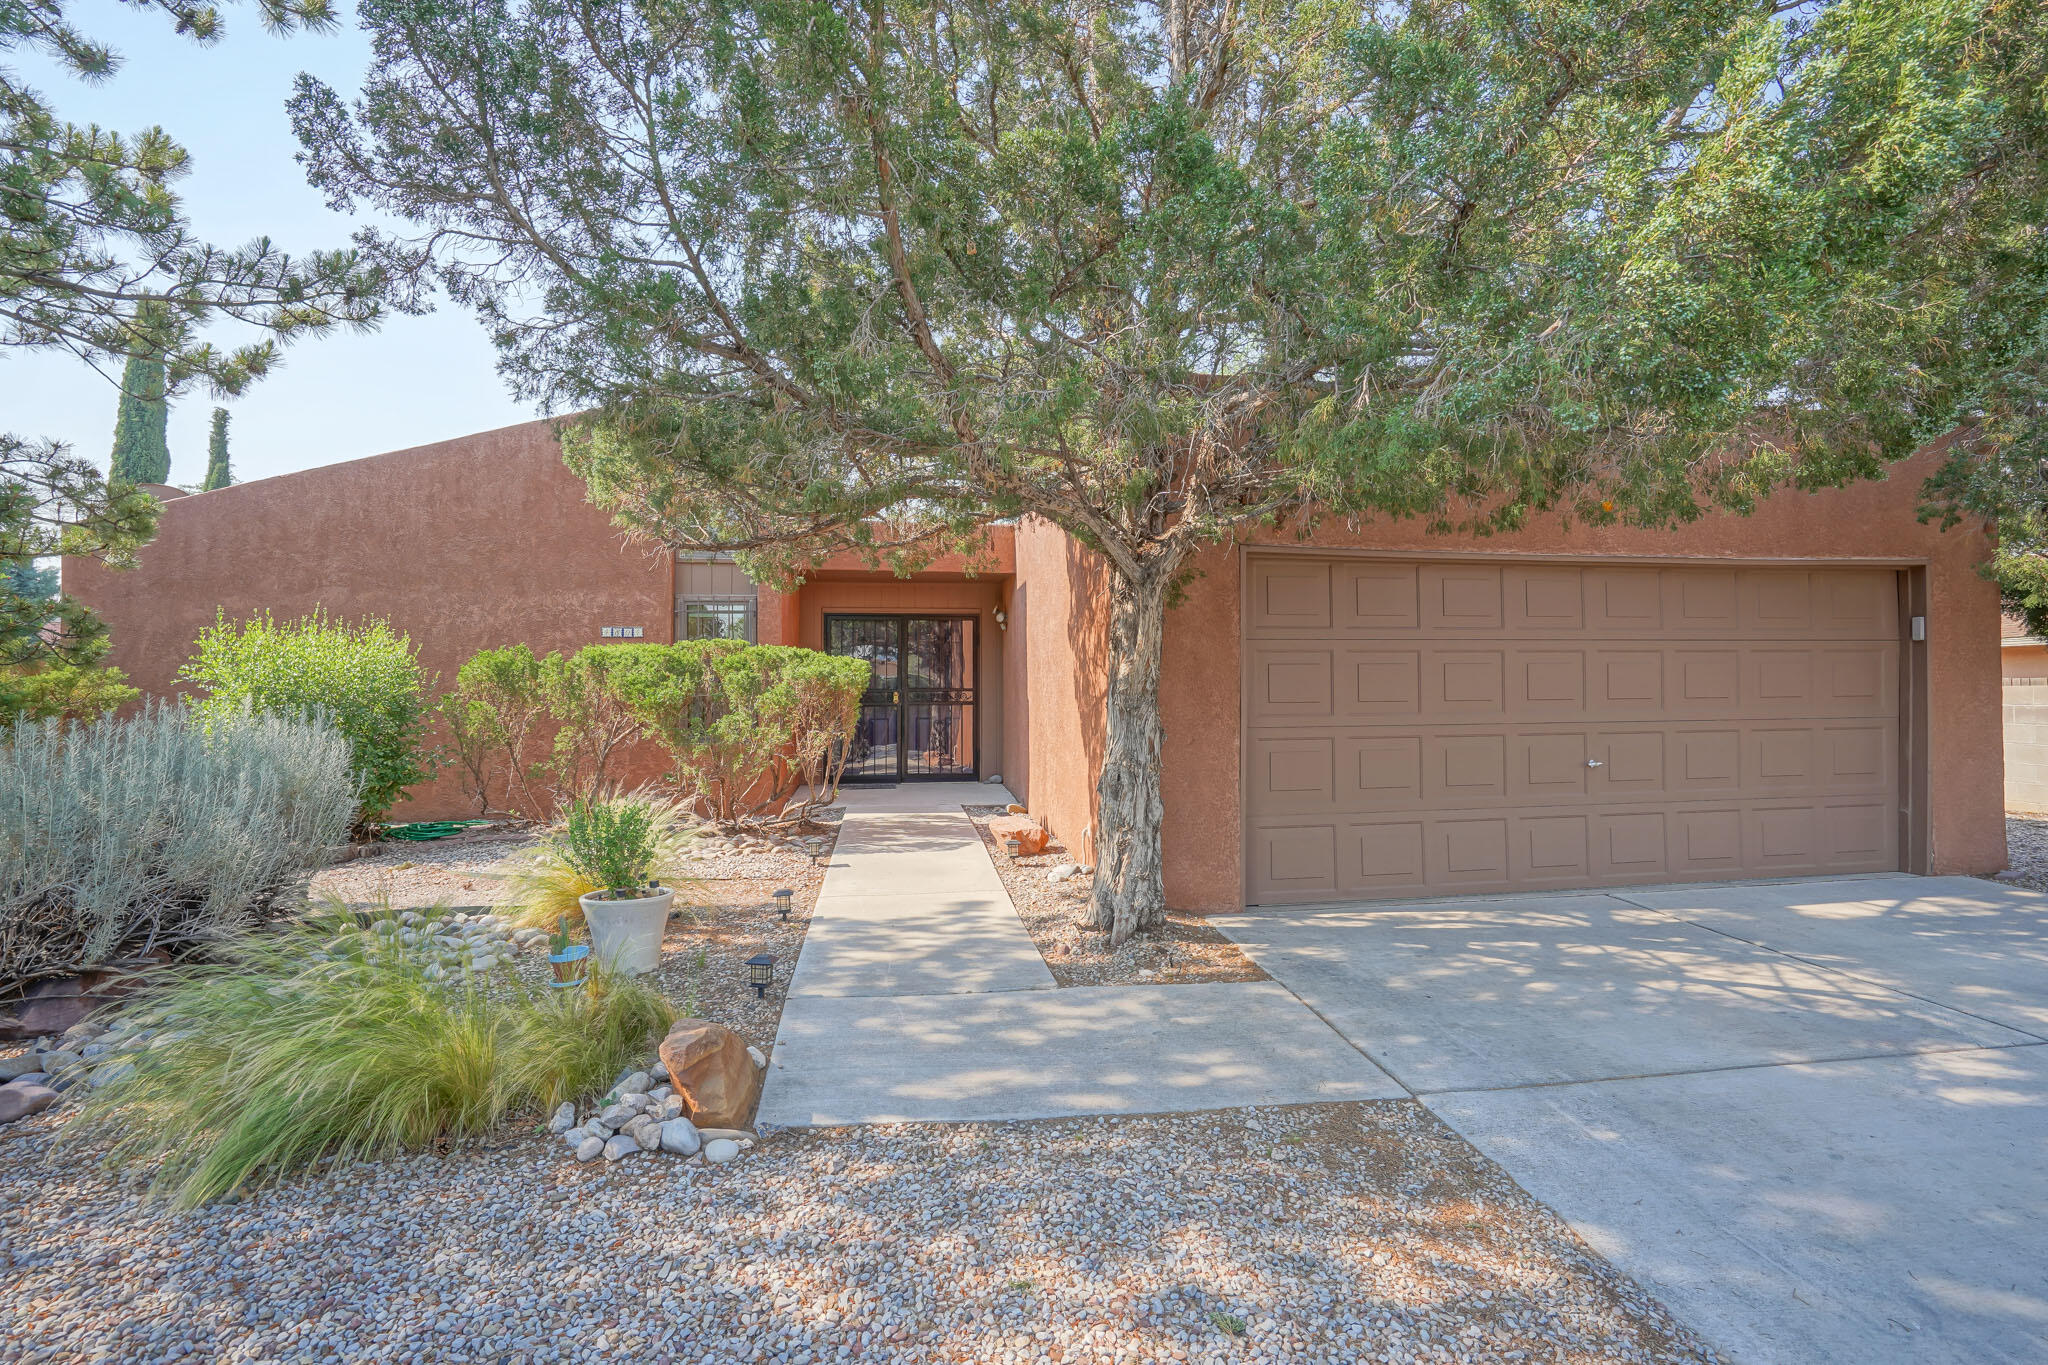 Beautiful Taylor Ranch home in a quiet neighborhood. Located within a short distance to great shopping, schools, parks and the Bosque River Trails. Abundant natural light with many windows, high ceilings and a center atrium that opens to the entry and living area. Four bedrooms, with separate master/bath, open concept dining and kitchen area. Owners have invested over $65,000 in home improvements inside and out.  Improvements inside include a complete kitchen remodel, bathroom remodels, new paint and trim throughout, solid core doors, closet refinishing and shelving.   Kitchen includes quartz countertops and all stainless steel appliances, with modern lighting, open design and bar seating area.